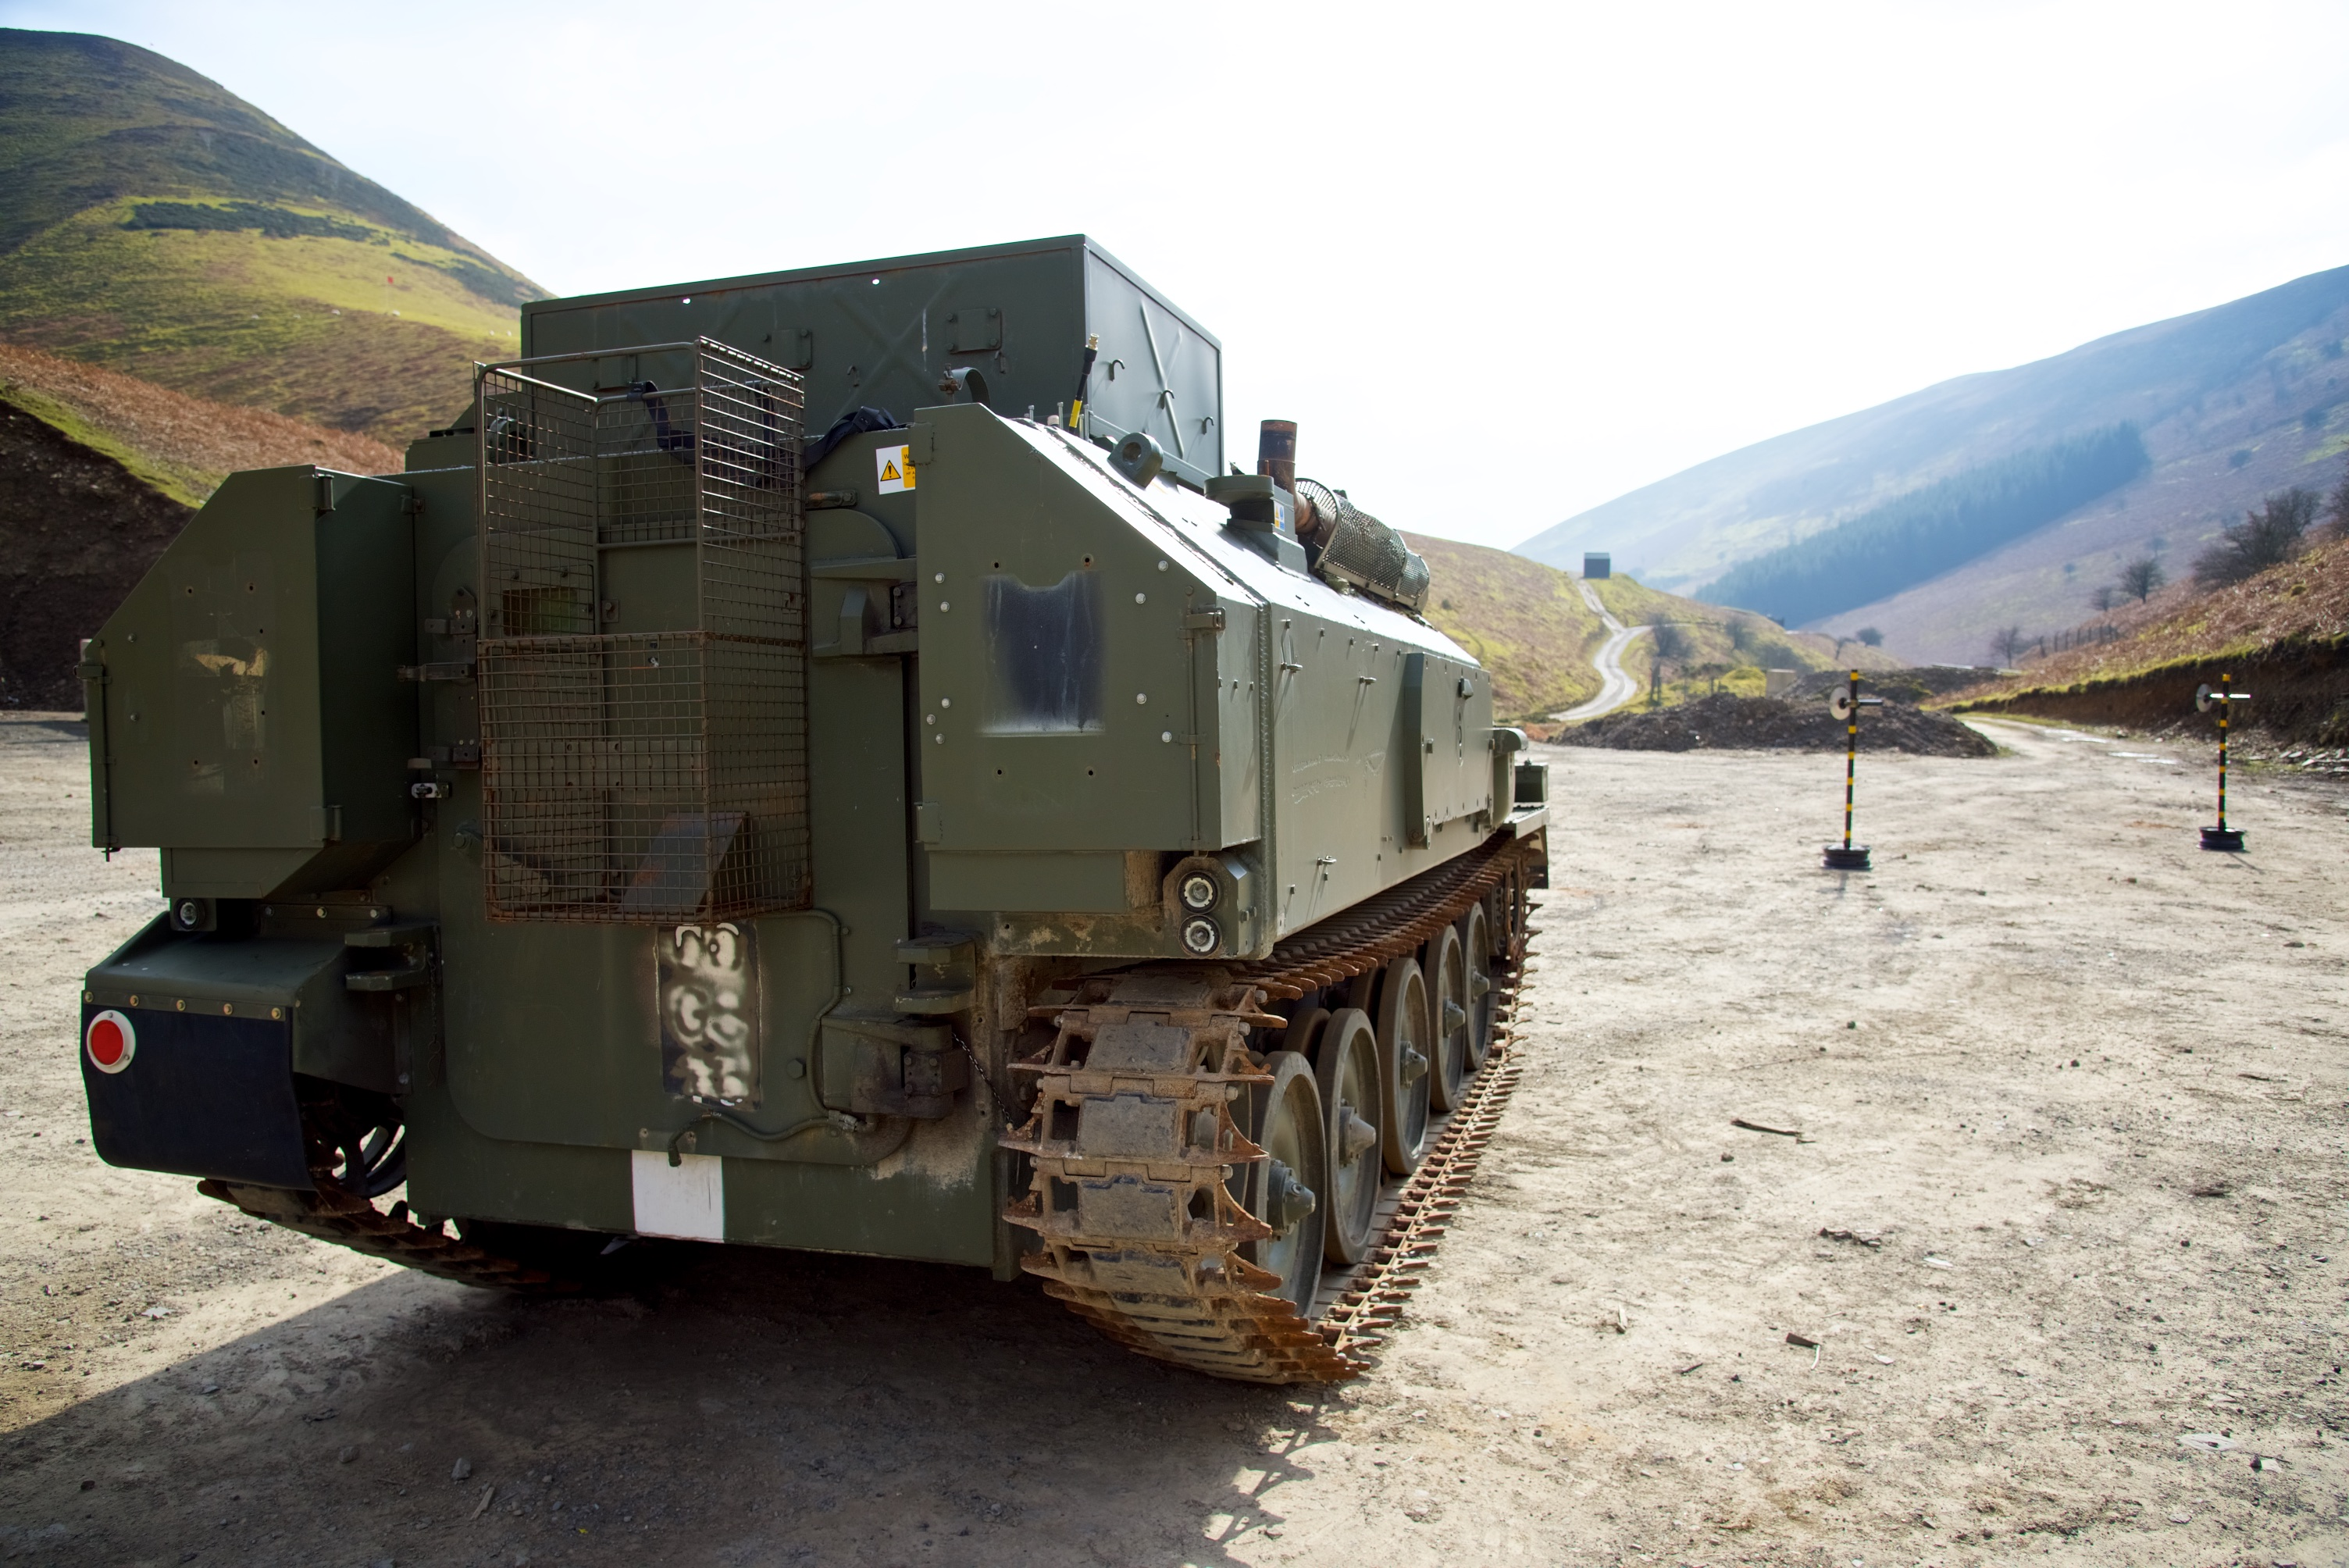 Armoured vehicle ready for steel pot or gravel pit under belly mine blast test